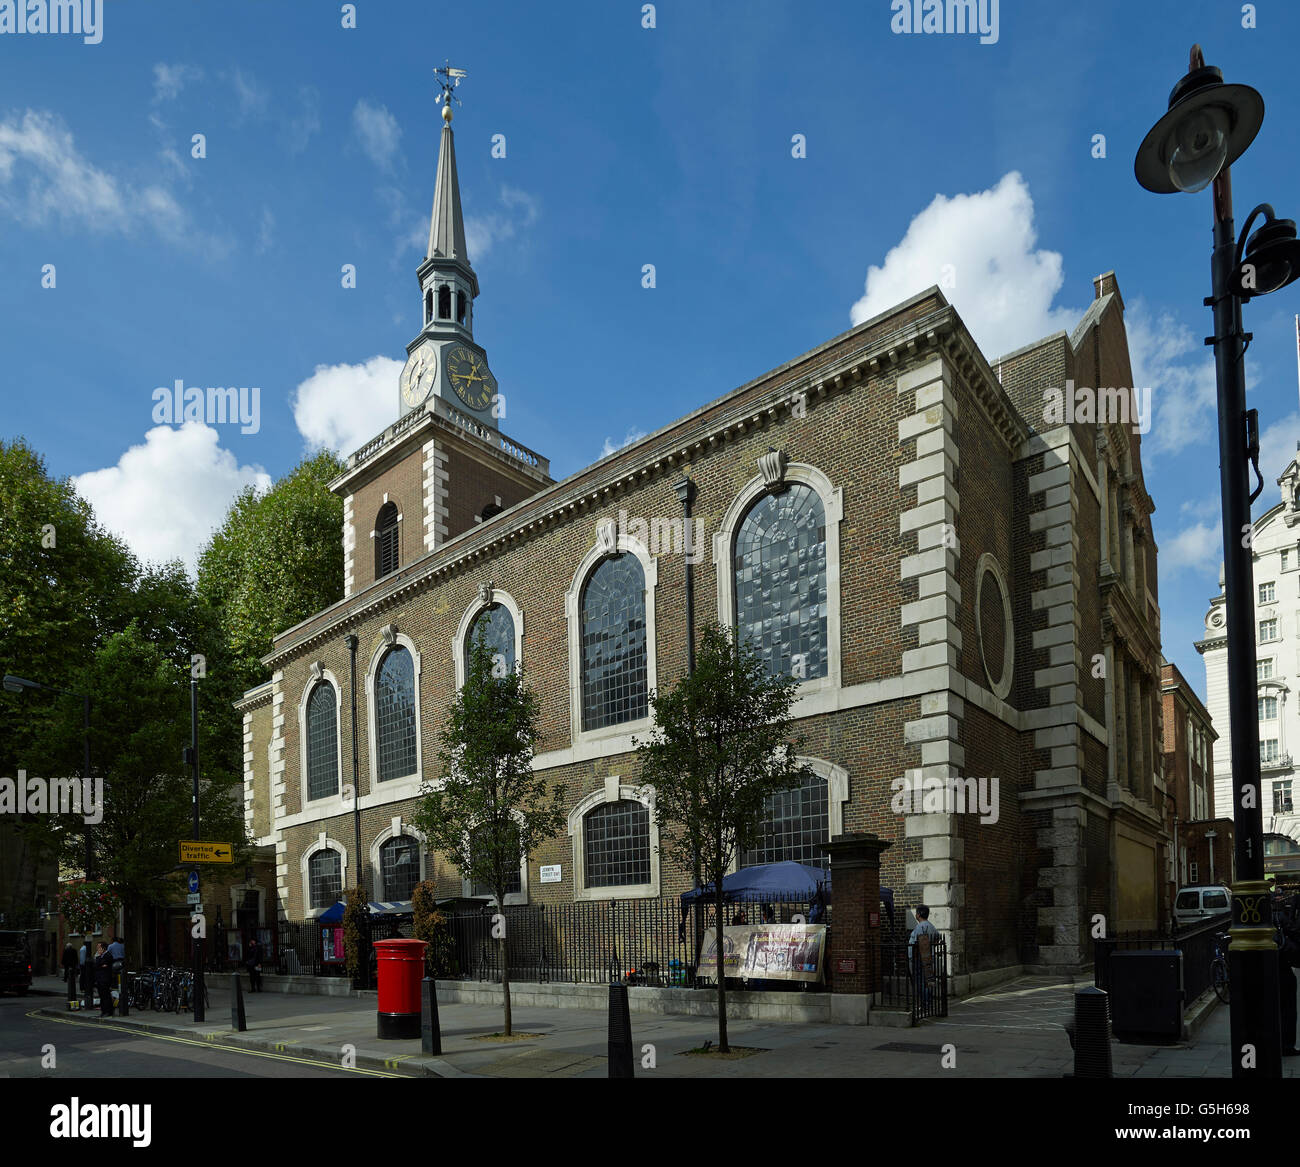 St James's PIccadilly, church in London by Christopher Wren. - Stock Image